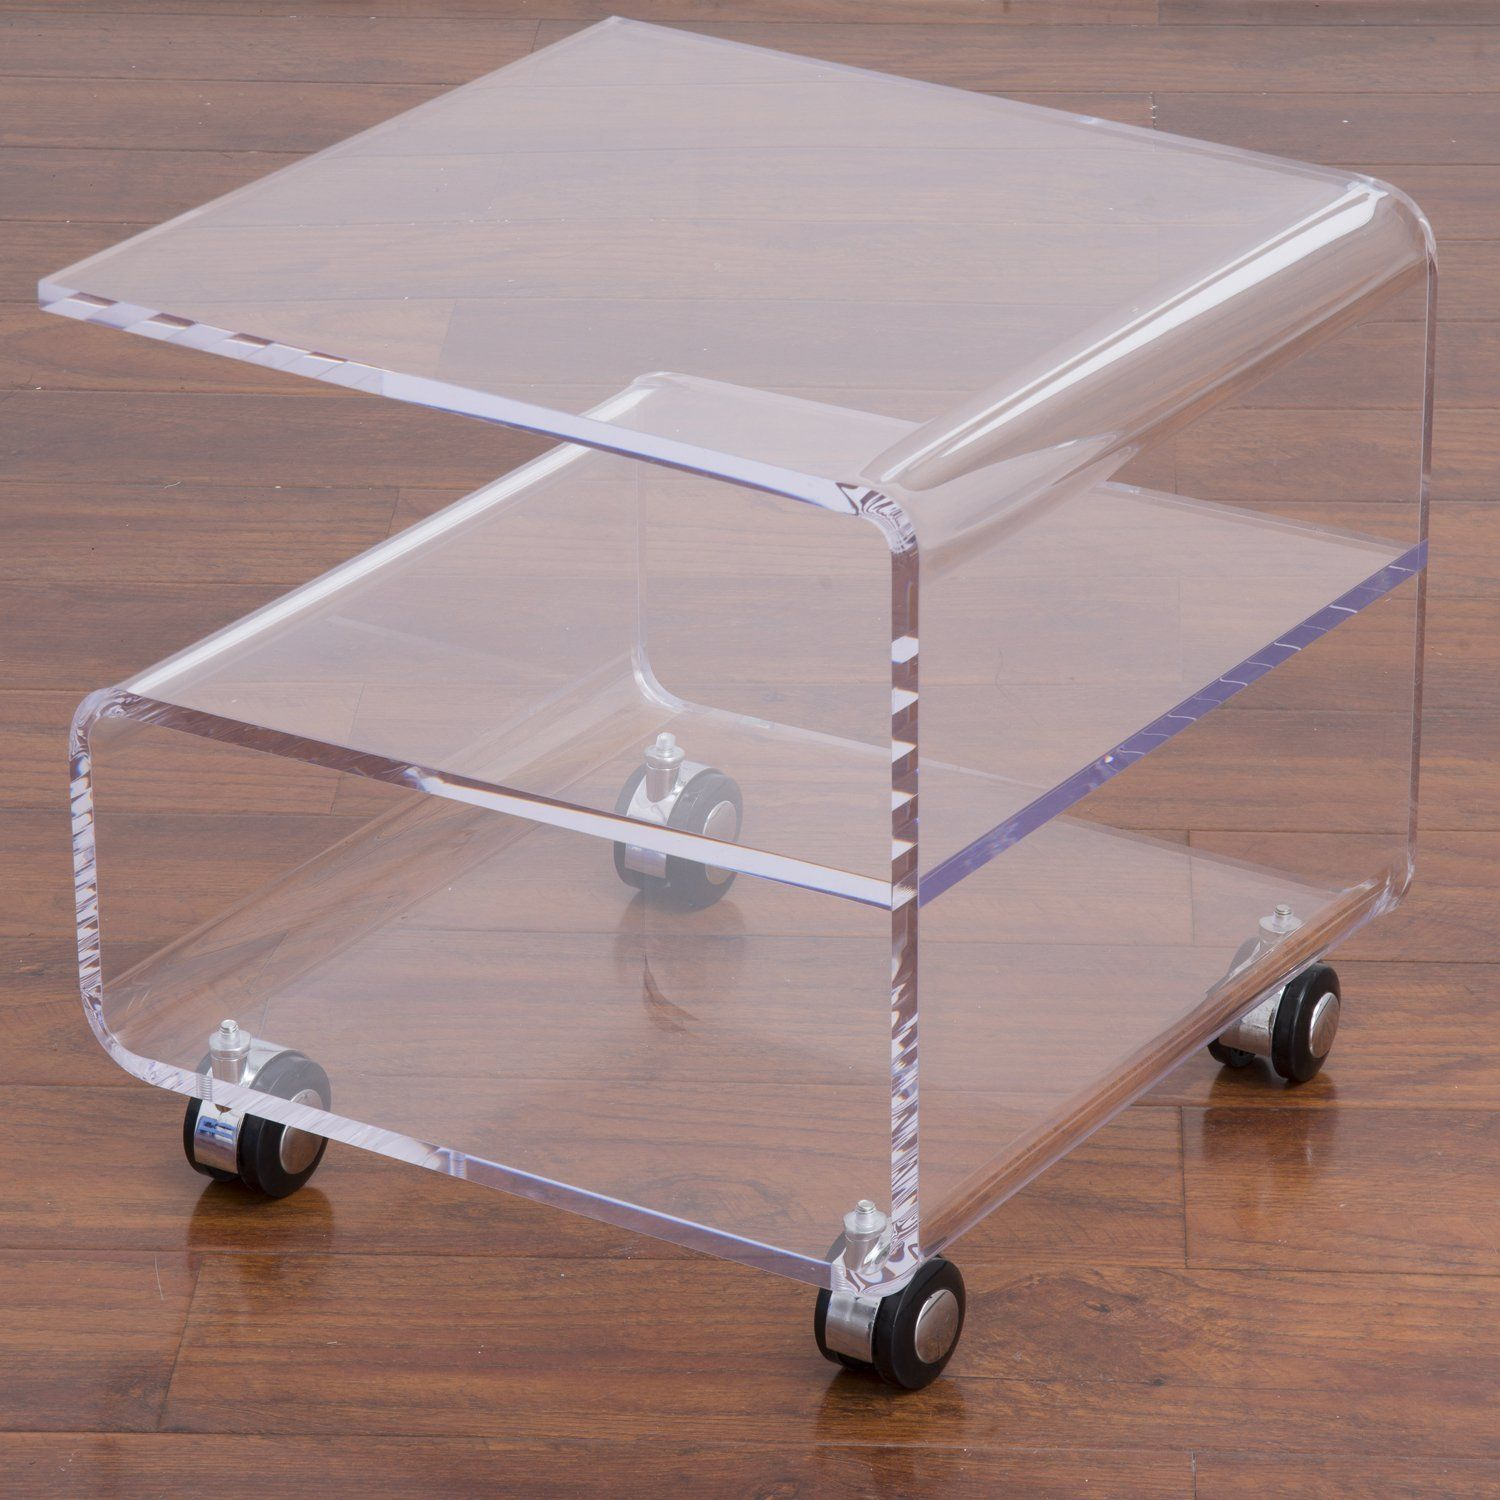 homcom transparent acrylic tea coffee table side end table trolley  - homcom transparent acrylic tea coffee table side end table trolley teapoyw wheels amazoncouk kitchen  home  lucite furniture  pinterest bearing